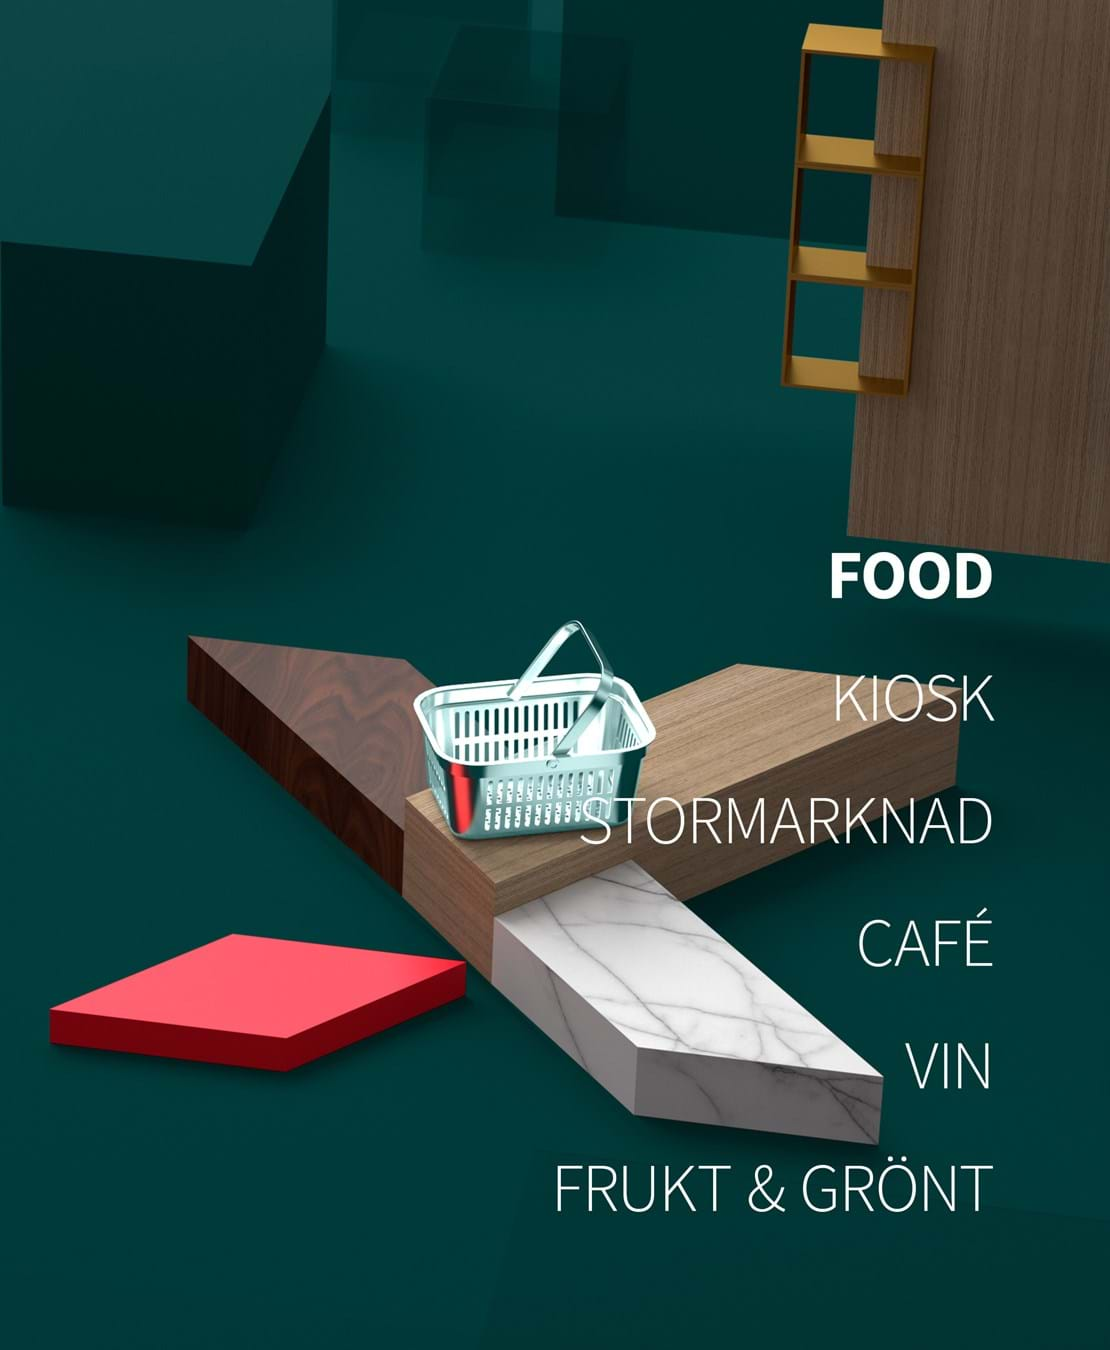 Expedit-kontakt-food-SE-003.jpg